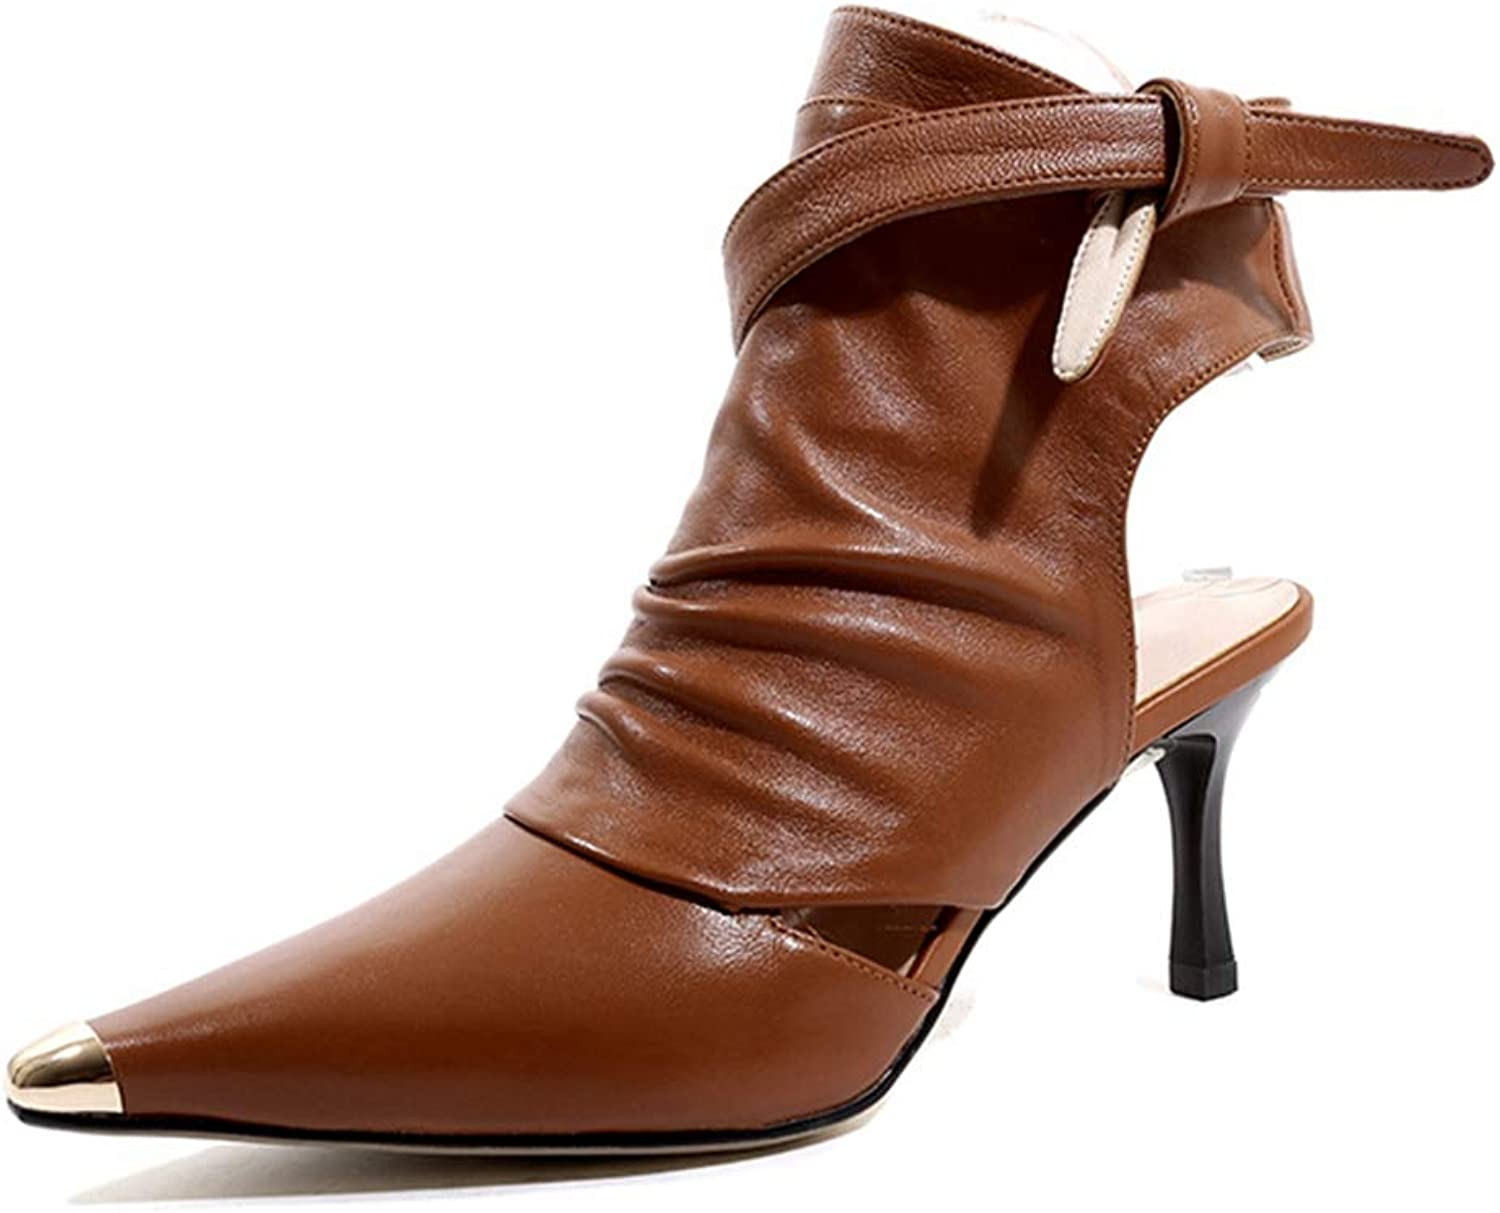 ASILETO Ankle Strap Pointed Toe Summer Sandals Women Apricot Genuine Leather Stiletto High Heels Cross Straps Hollow Ankle Boots Female